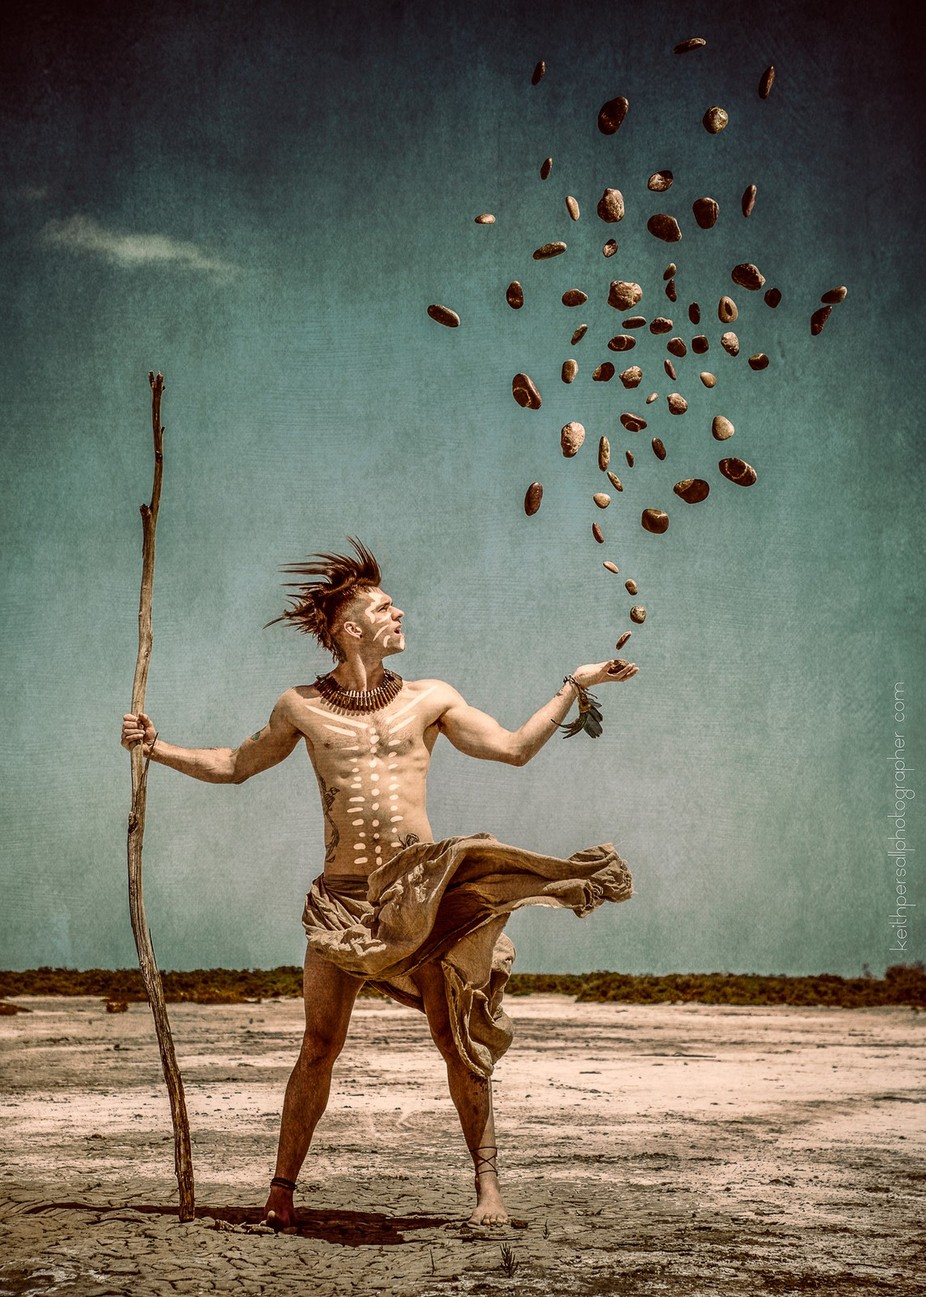 Tro Tribal by keithpersall - The Magic Of Editing Photo Contest